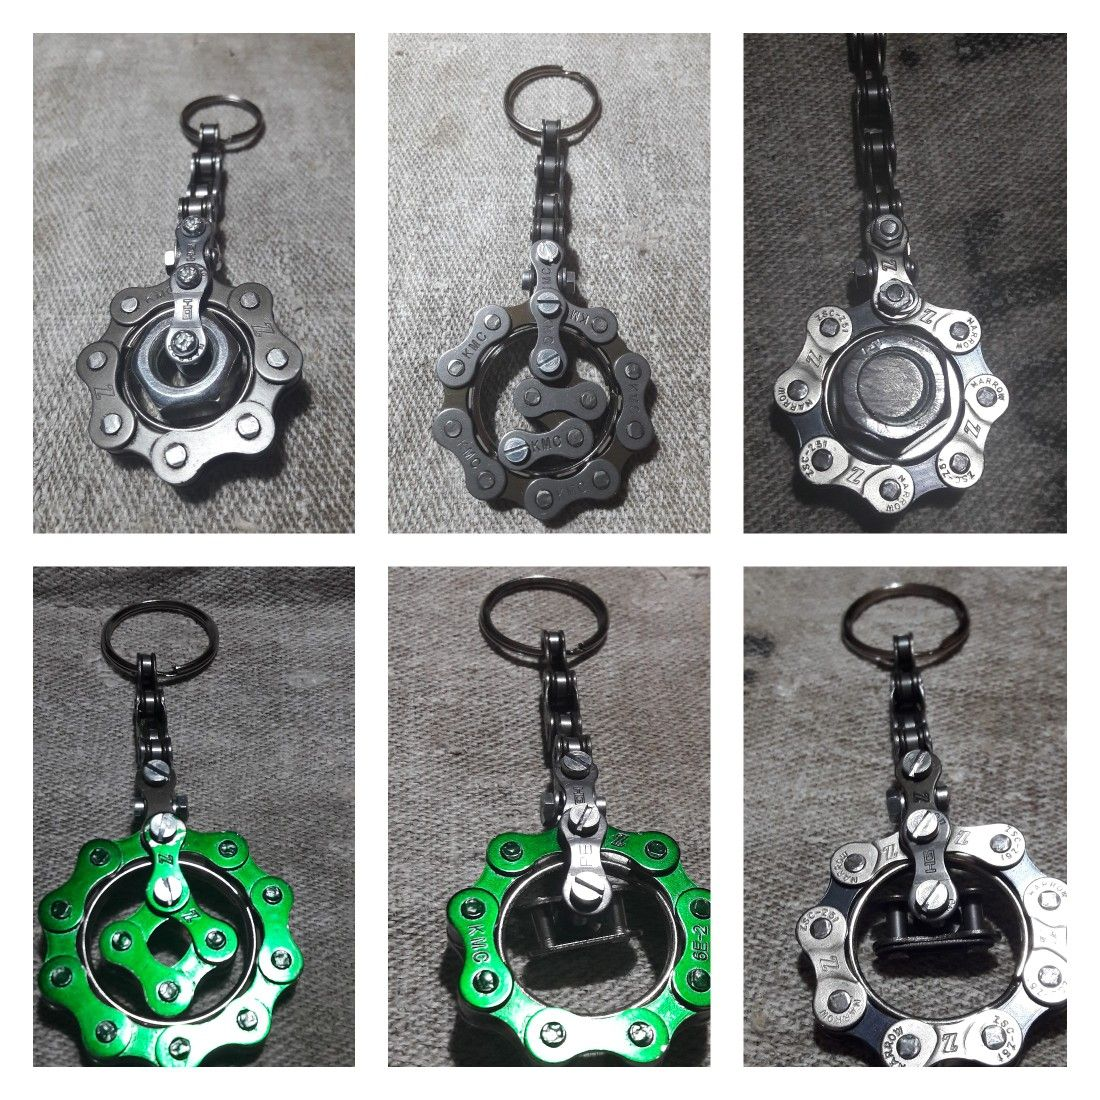 Key Ring Key Holder Made Of Bicycle Chains With Different Metal